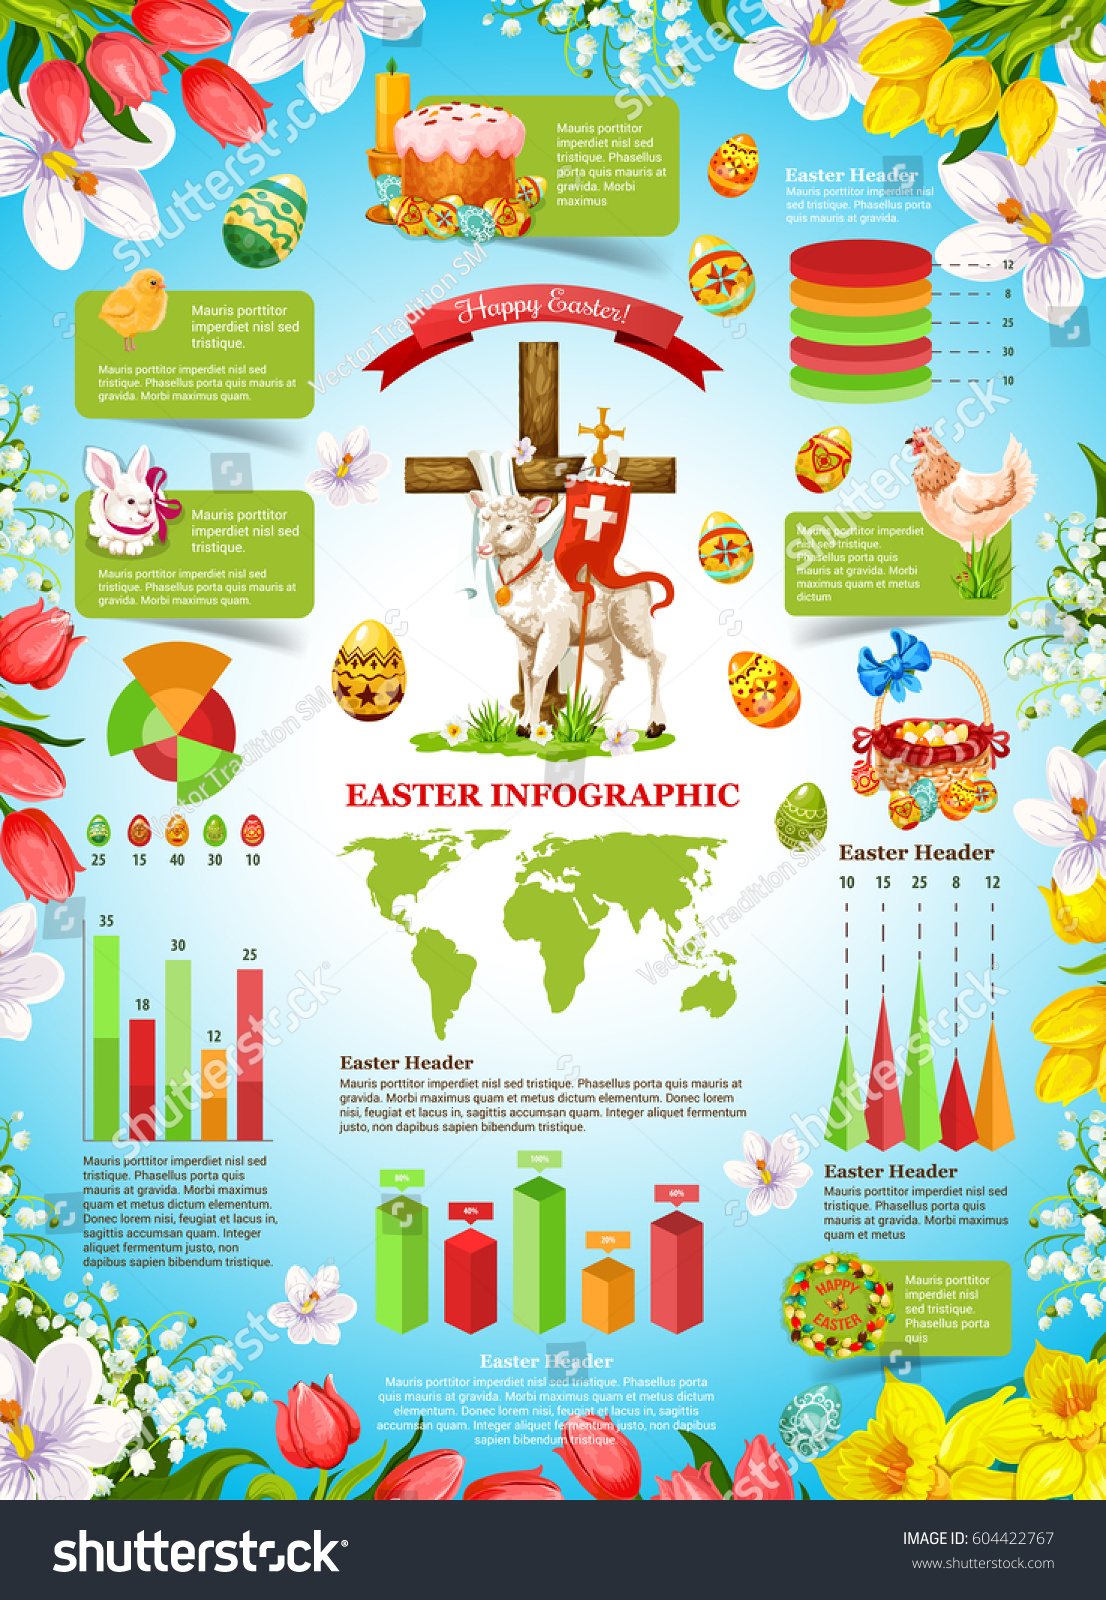 Easter celebration infographic template floral frame stock vector easter celebration infographic template floral frame stock vector 604422767 shutterstock ccuart Gallery